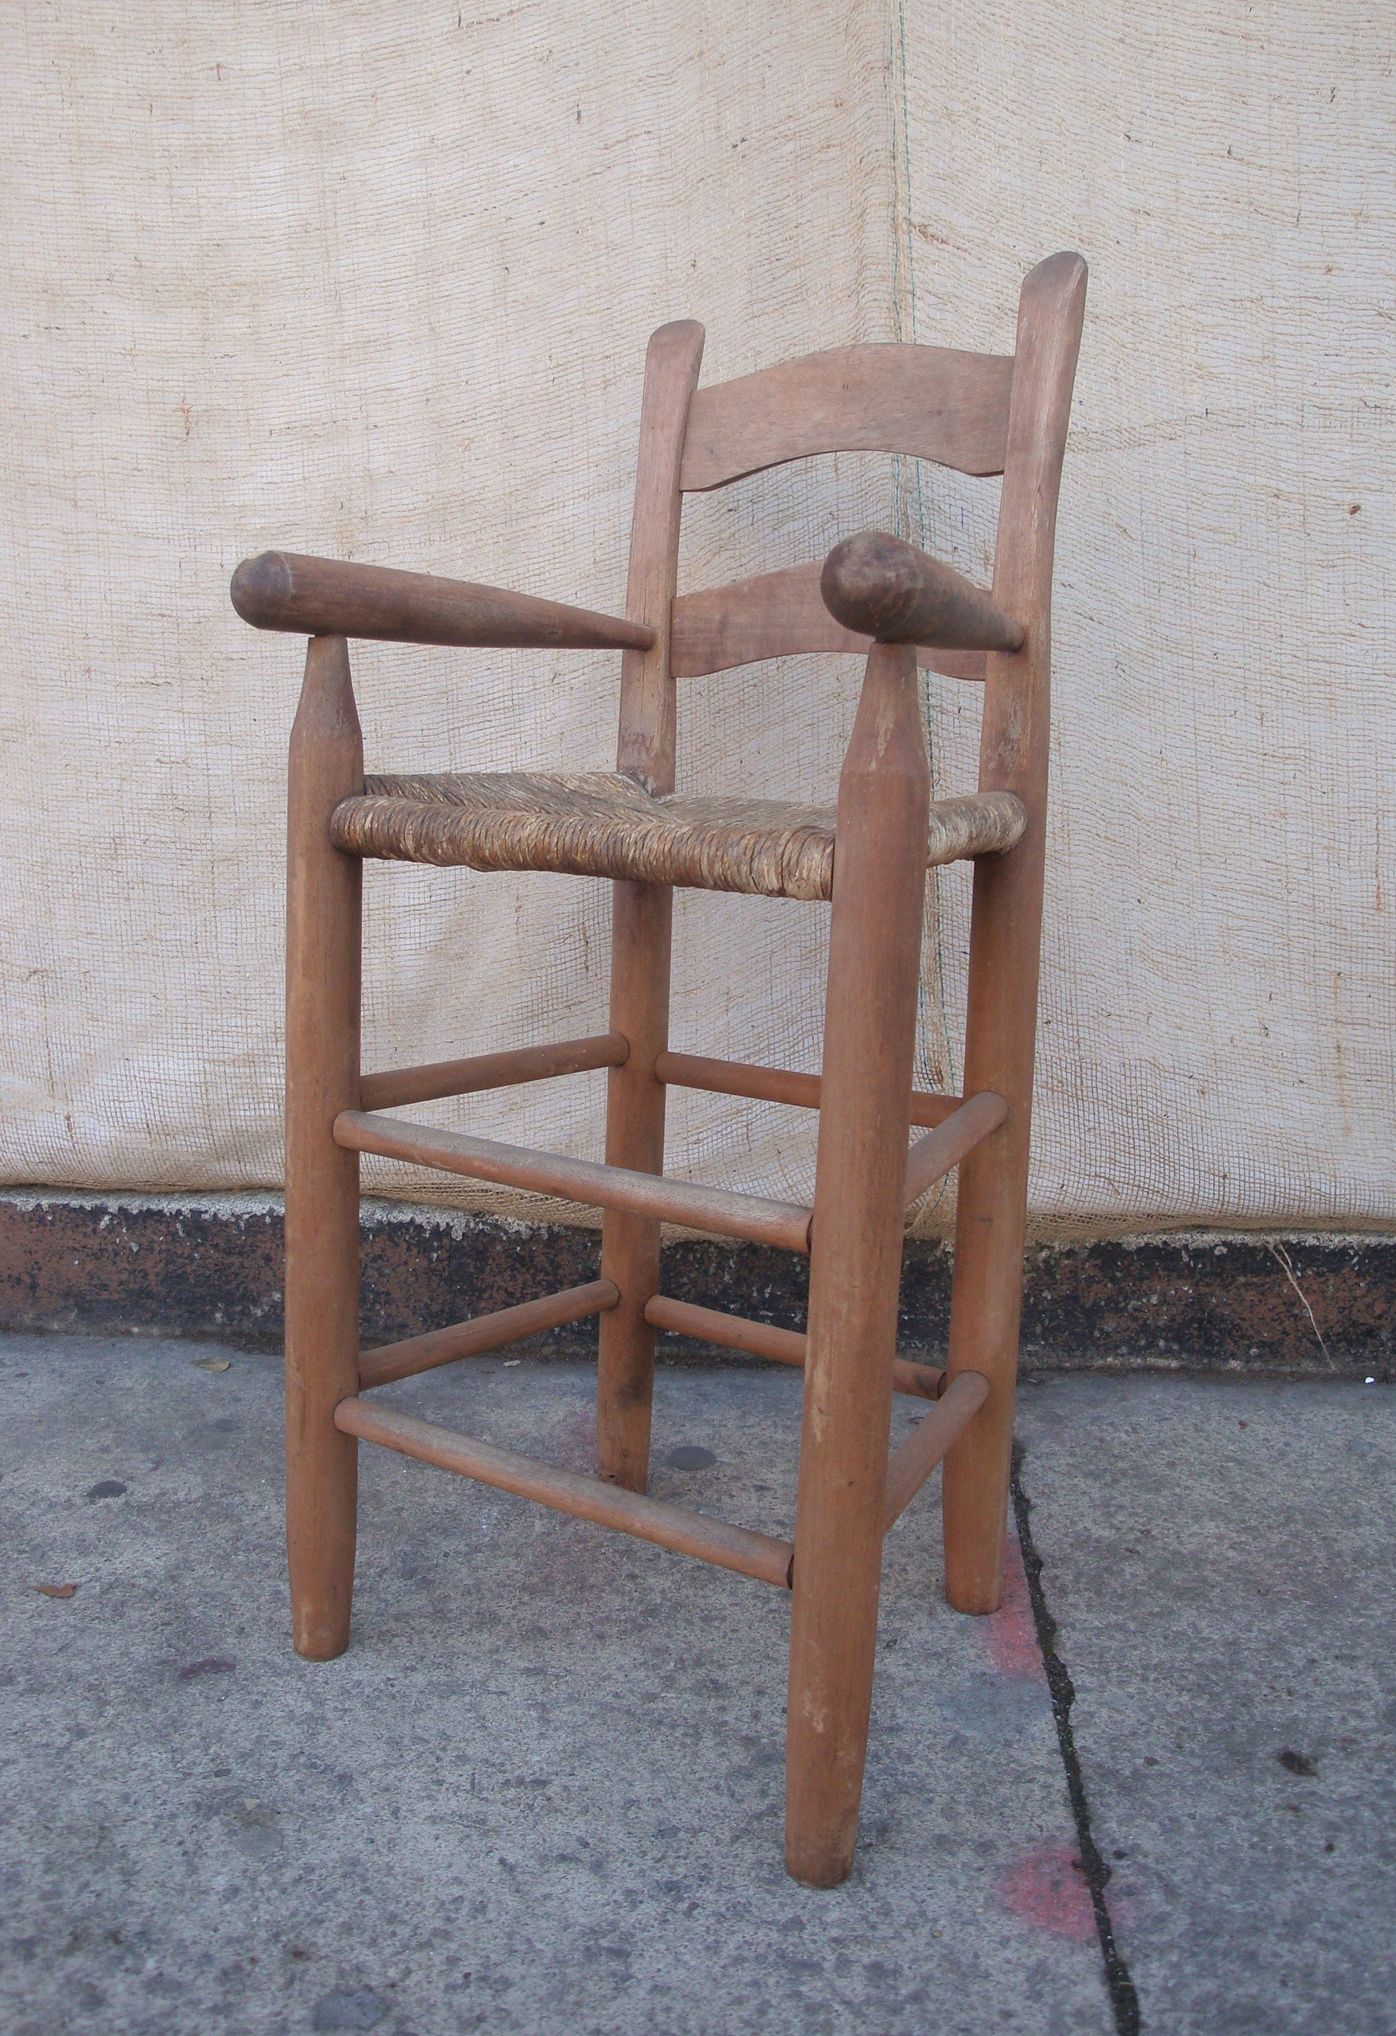 Tall Antique Child's High Chair - Tall Antique Child's High Chair Woodwork Pinterest High Chairs